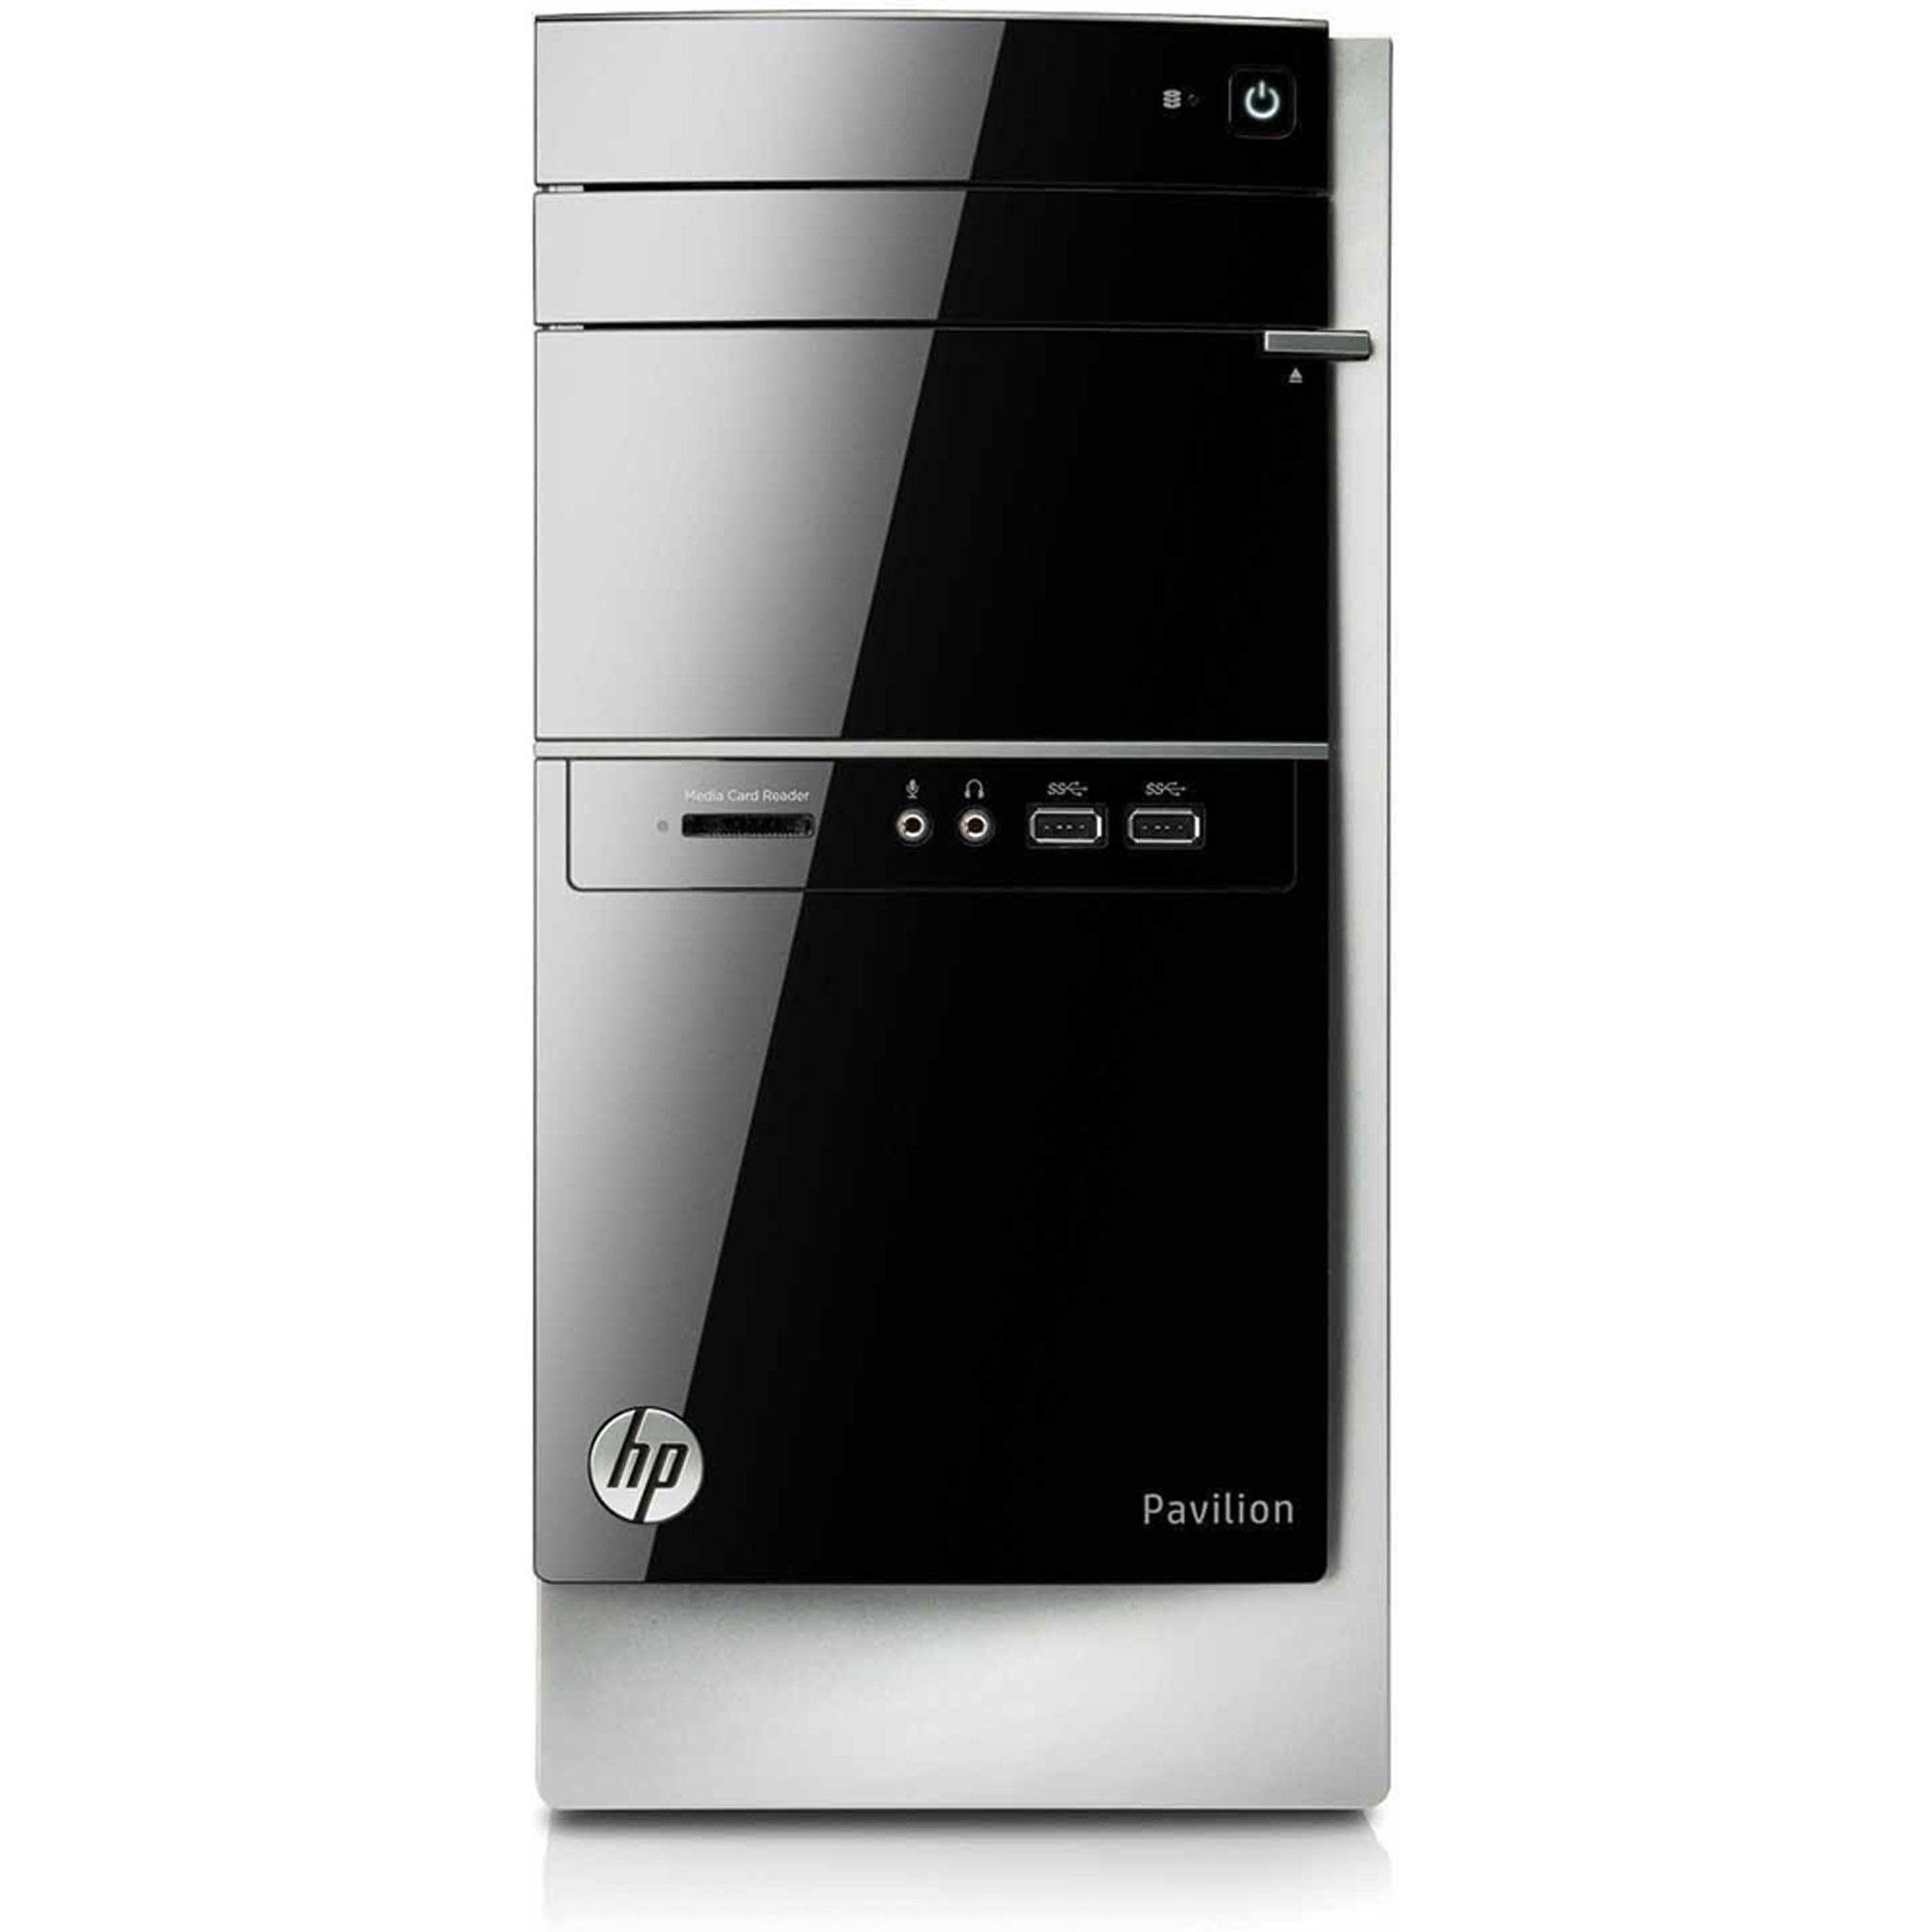 Refurbished HP Black Pavilion 500 - 270 Desktop PC with Intel Core i3 - 4130 processor, 8GB Memory, 1TB Hard Drive and Windows 8.1 (Monitor Not Included) (Eligible for Free Windows 10 Upgrade)